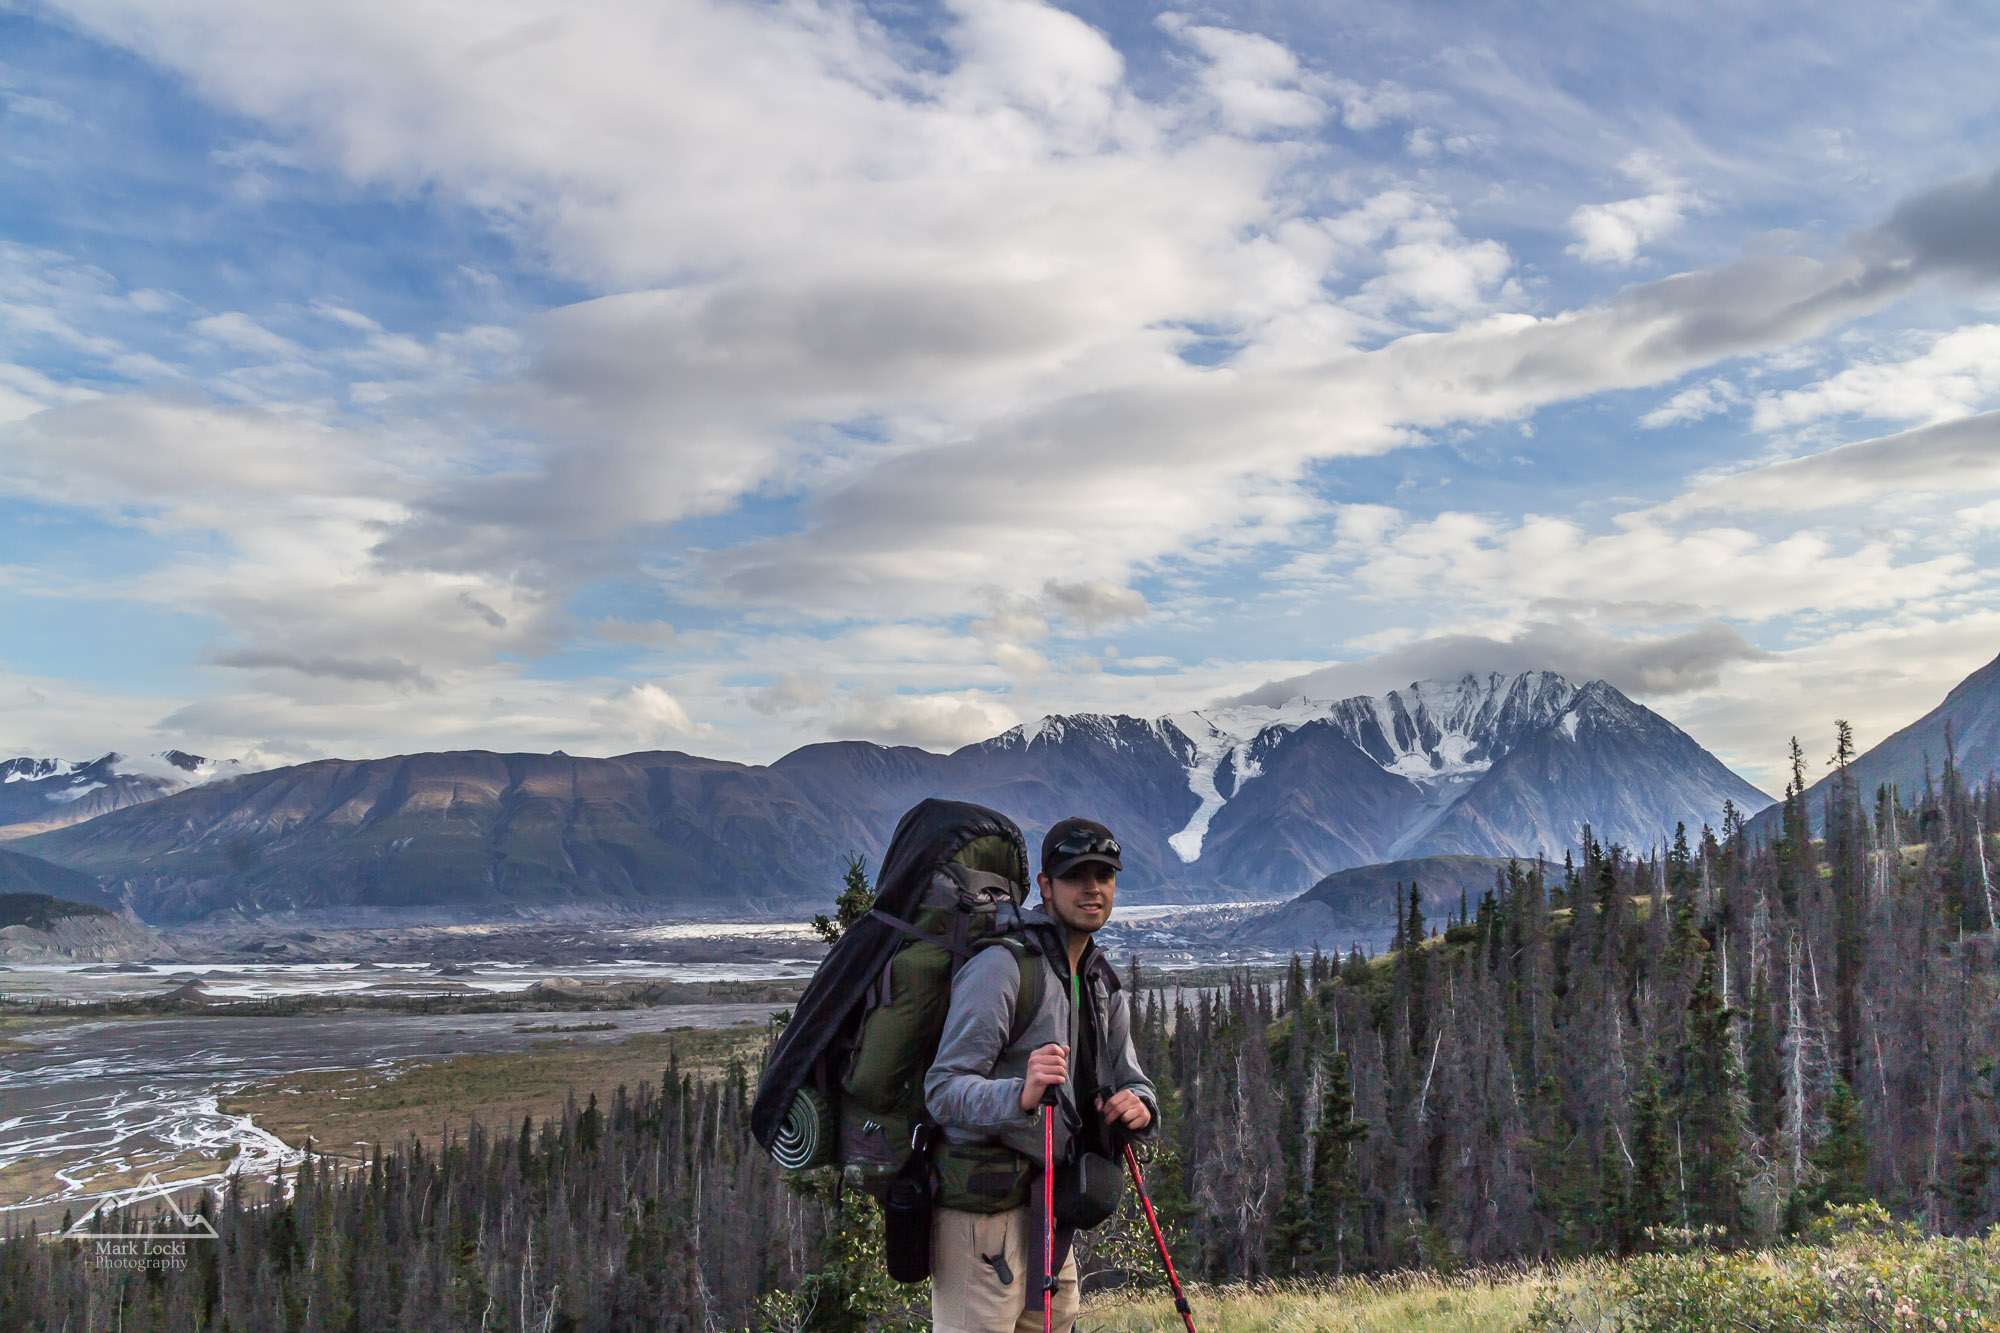 Carrying a big pack hiking the Slims River Trail in Kluane National Park